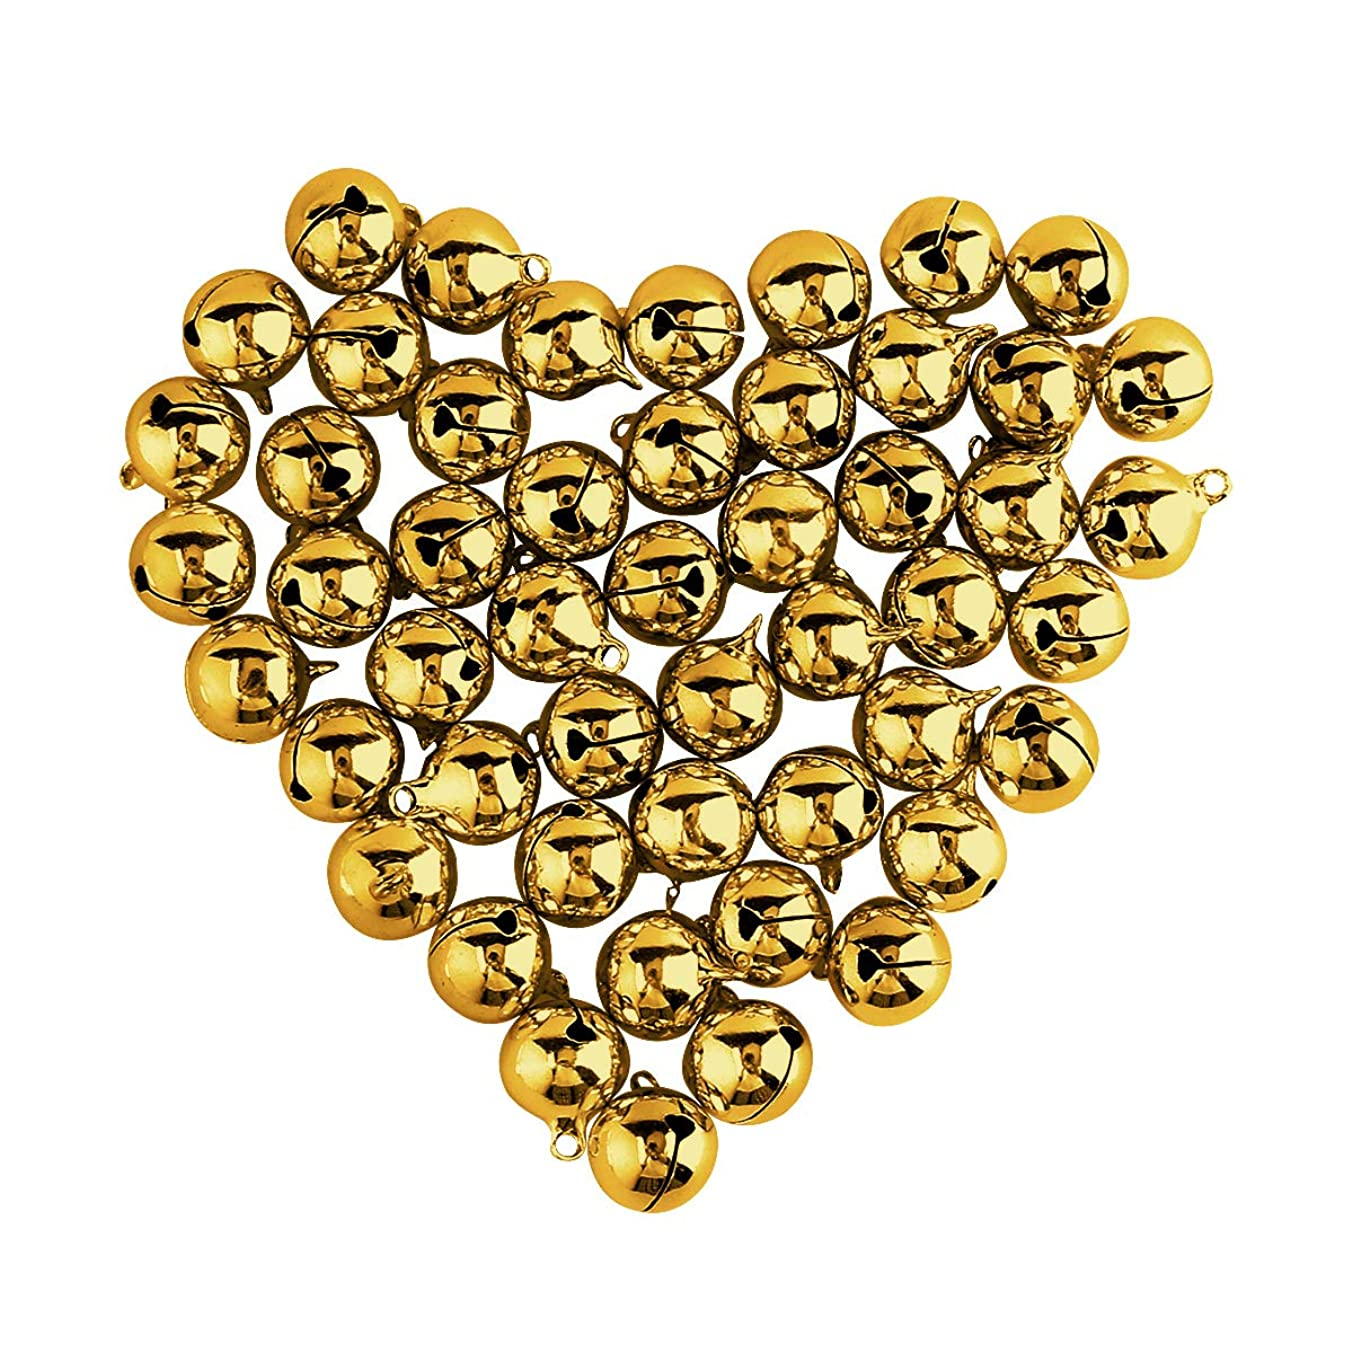 Craft Bells, Sdootjewelry 50Pcs 0.71 inch Jingle Bells Gold Christmas Bells Small Bells Bulk for Party Festival Decorations and DIY Jewelry Making